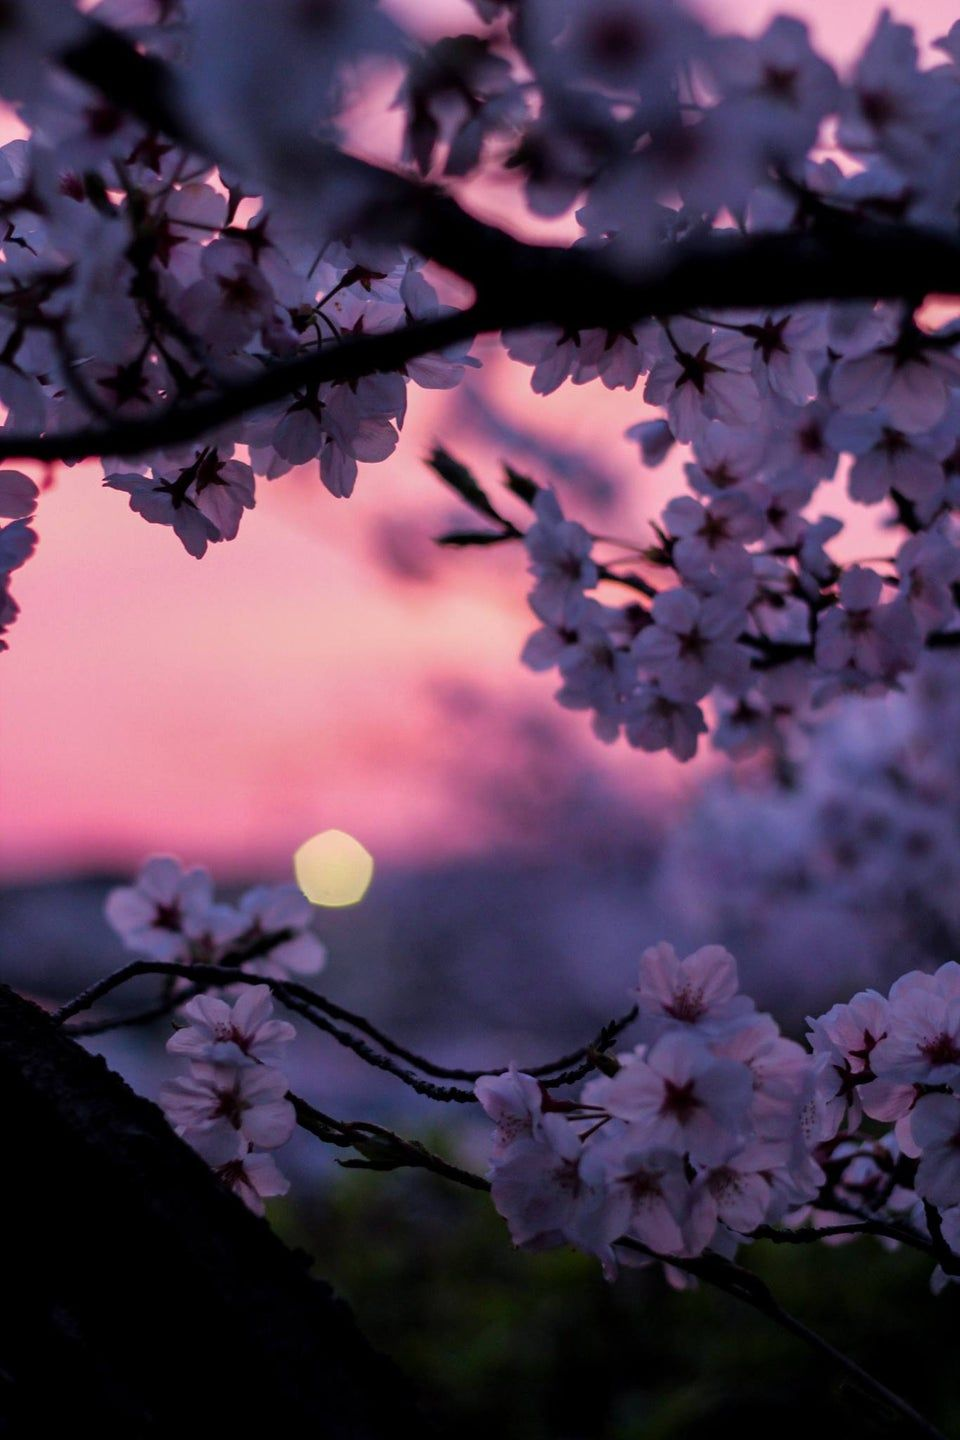 Reddit Japanpics Cherry Blossoms During The Golden Hour Saga Prefectur In 2021 Beautiful Nature Wallpaper Cherry Blossom Wallpaper Cherry Blossom Wallpaper Iphone